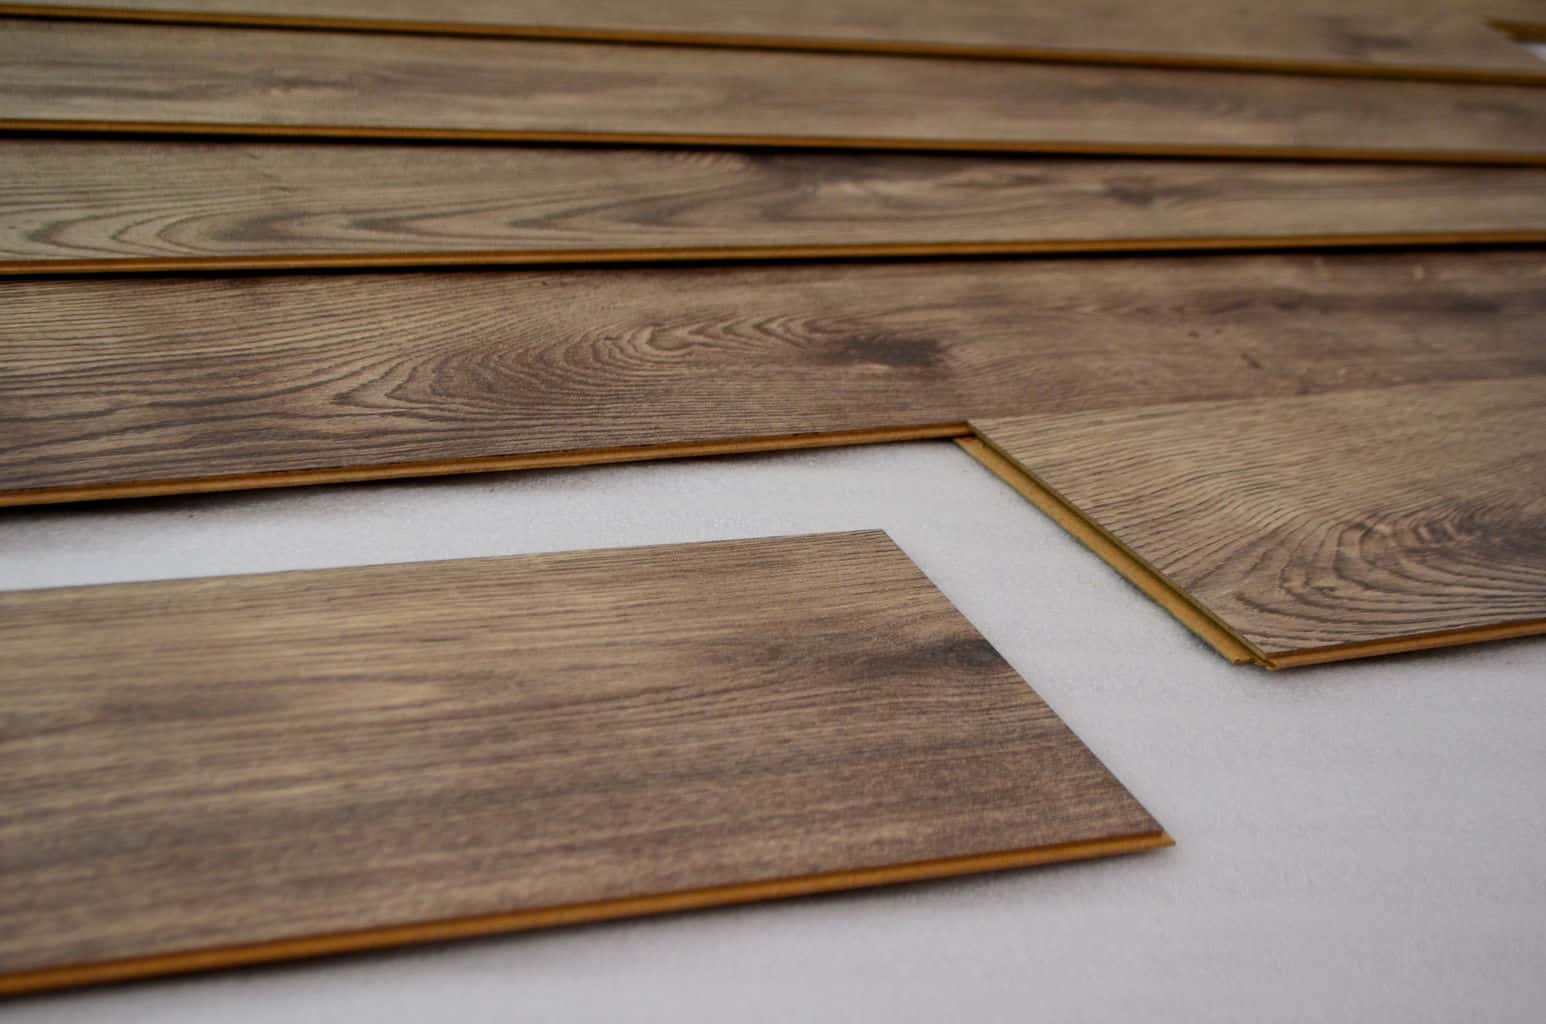 12mm Laminate Flooring Is The Thickest Option But Regardless Of Thickness All Made With Same Amount Care And Quality